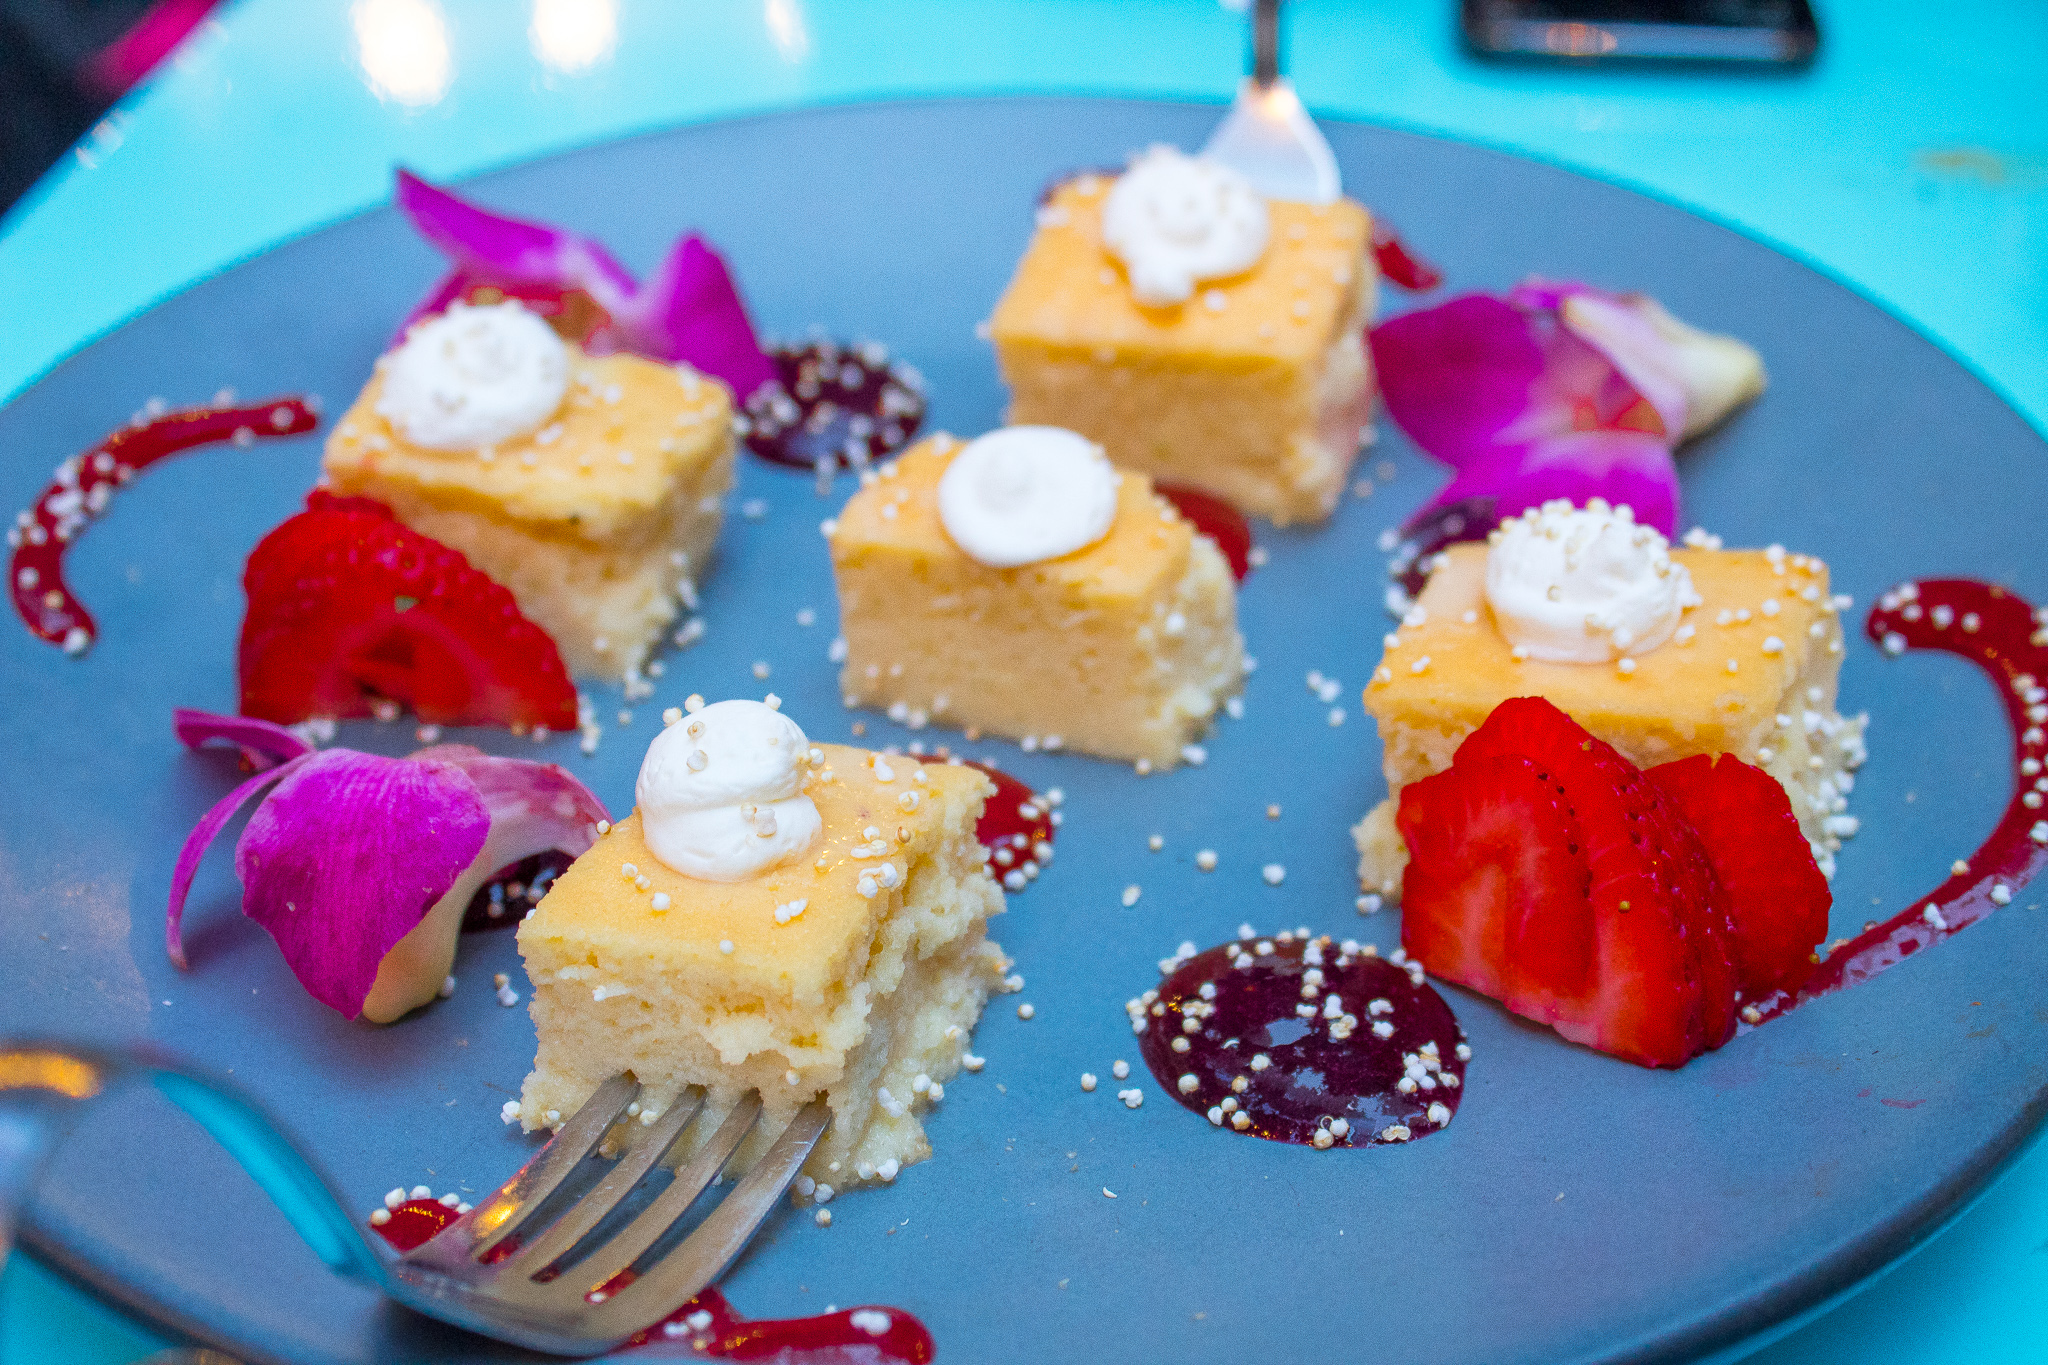 TRES LECHES W/ BERRIES